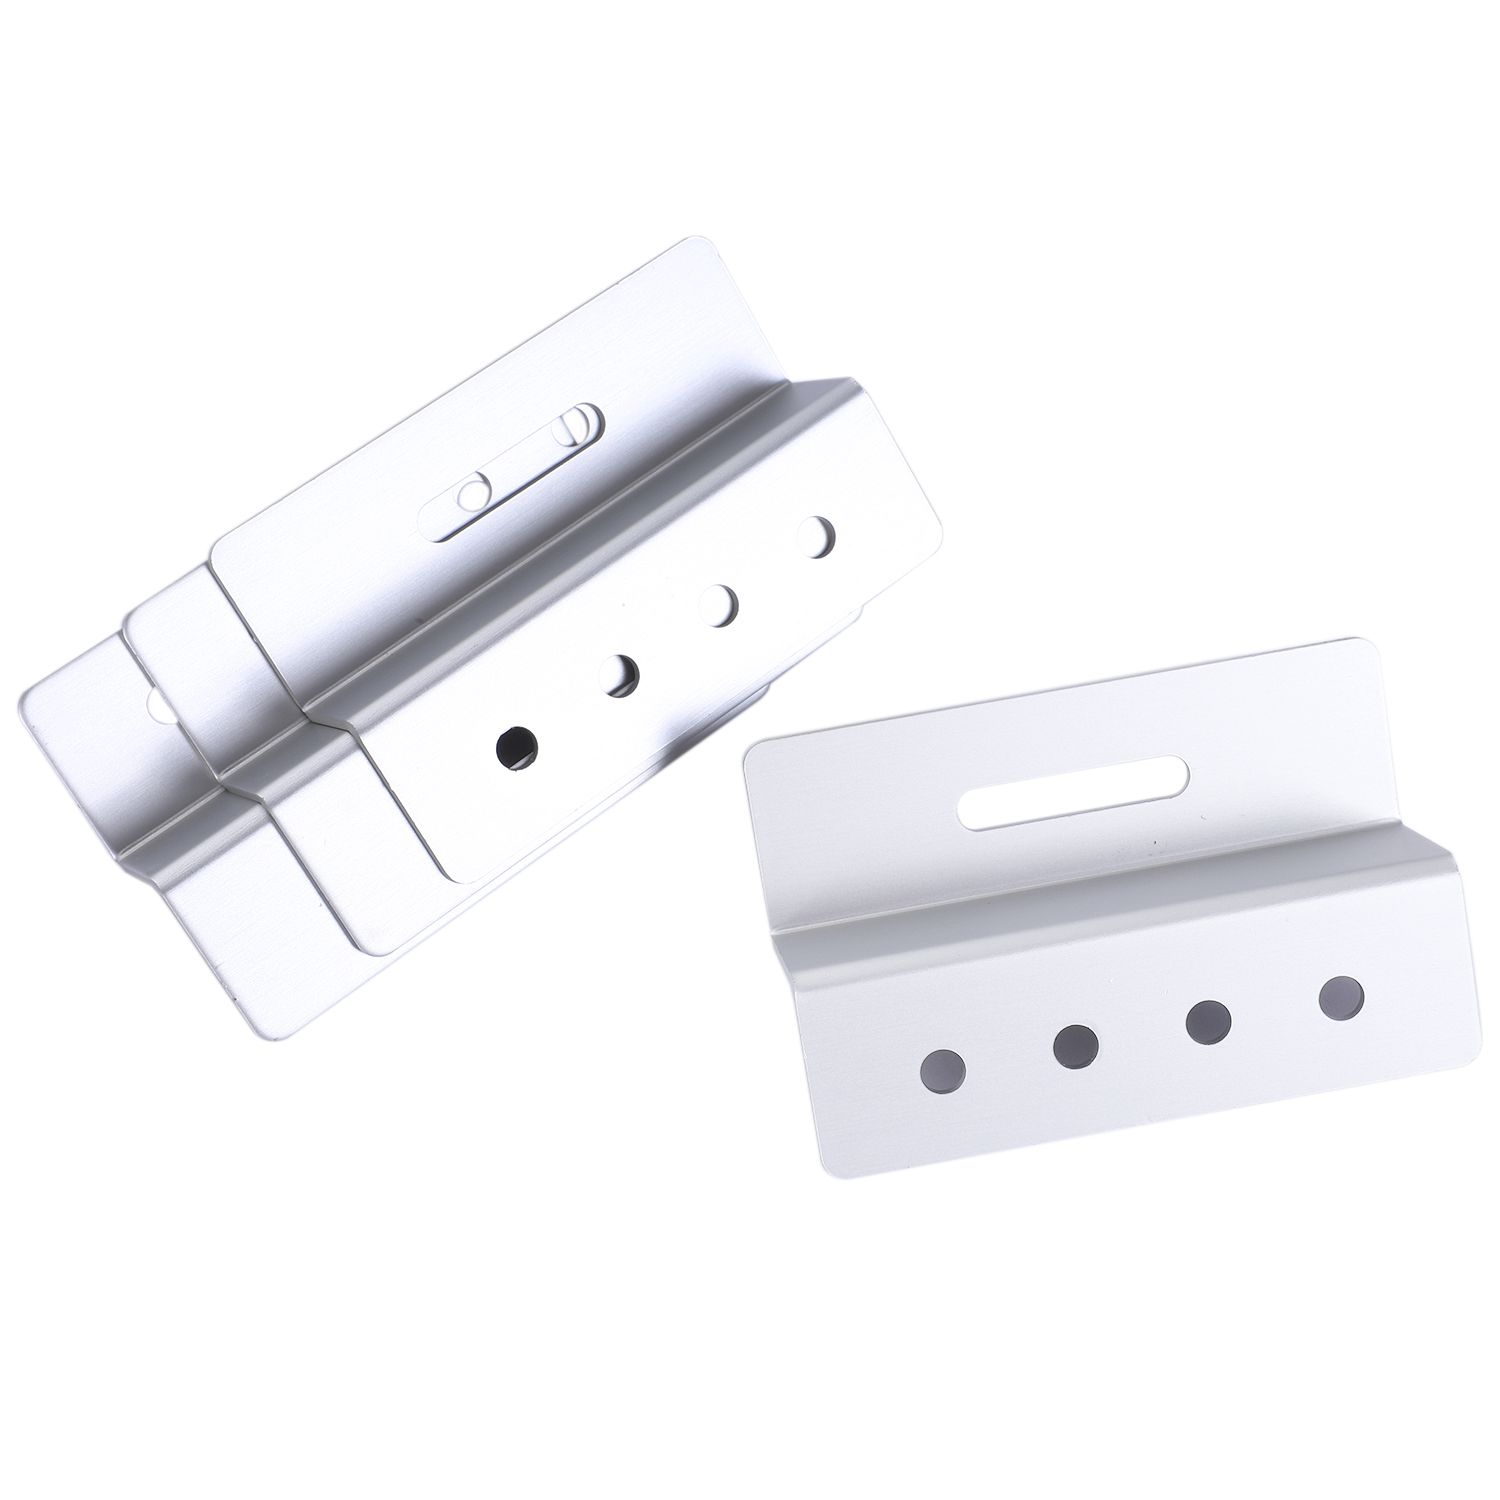 Best price ZB-03 Silver Tone Solar Panel Mounting Z Bracket Set for Yacht/Solar PanelBest price ZB-03 Silver Tone Solar Panel Mounting Z Bracket Set for Yacht/Solar Panel